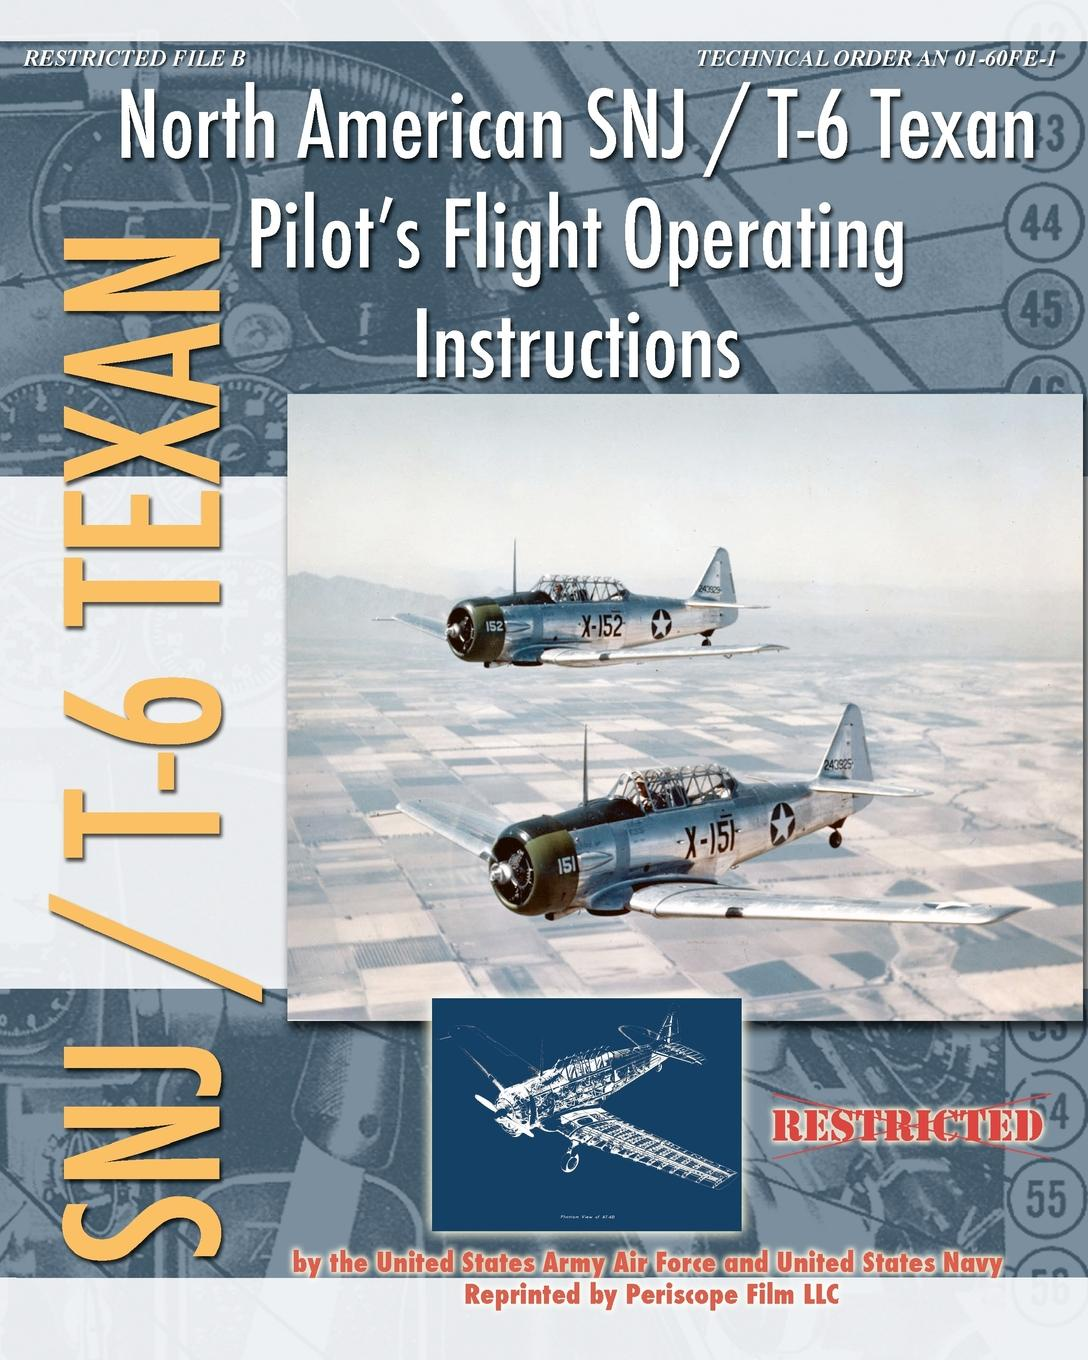 United States Navy, United States Army Air Forces North American SNJ / T-6 Texan Pilot's Flight Operating Instructions